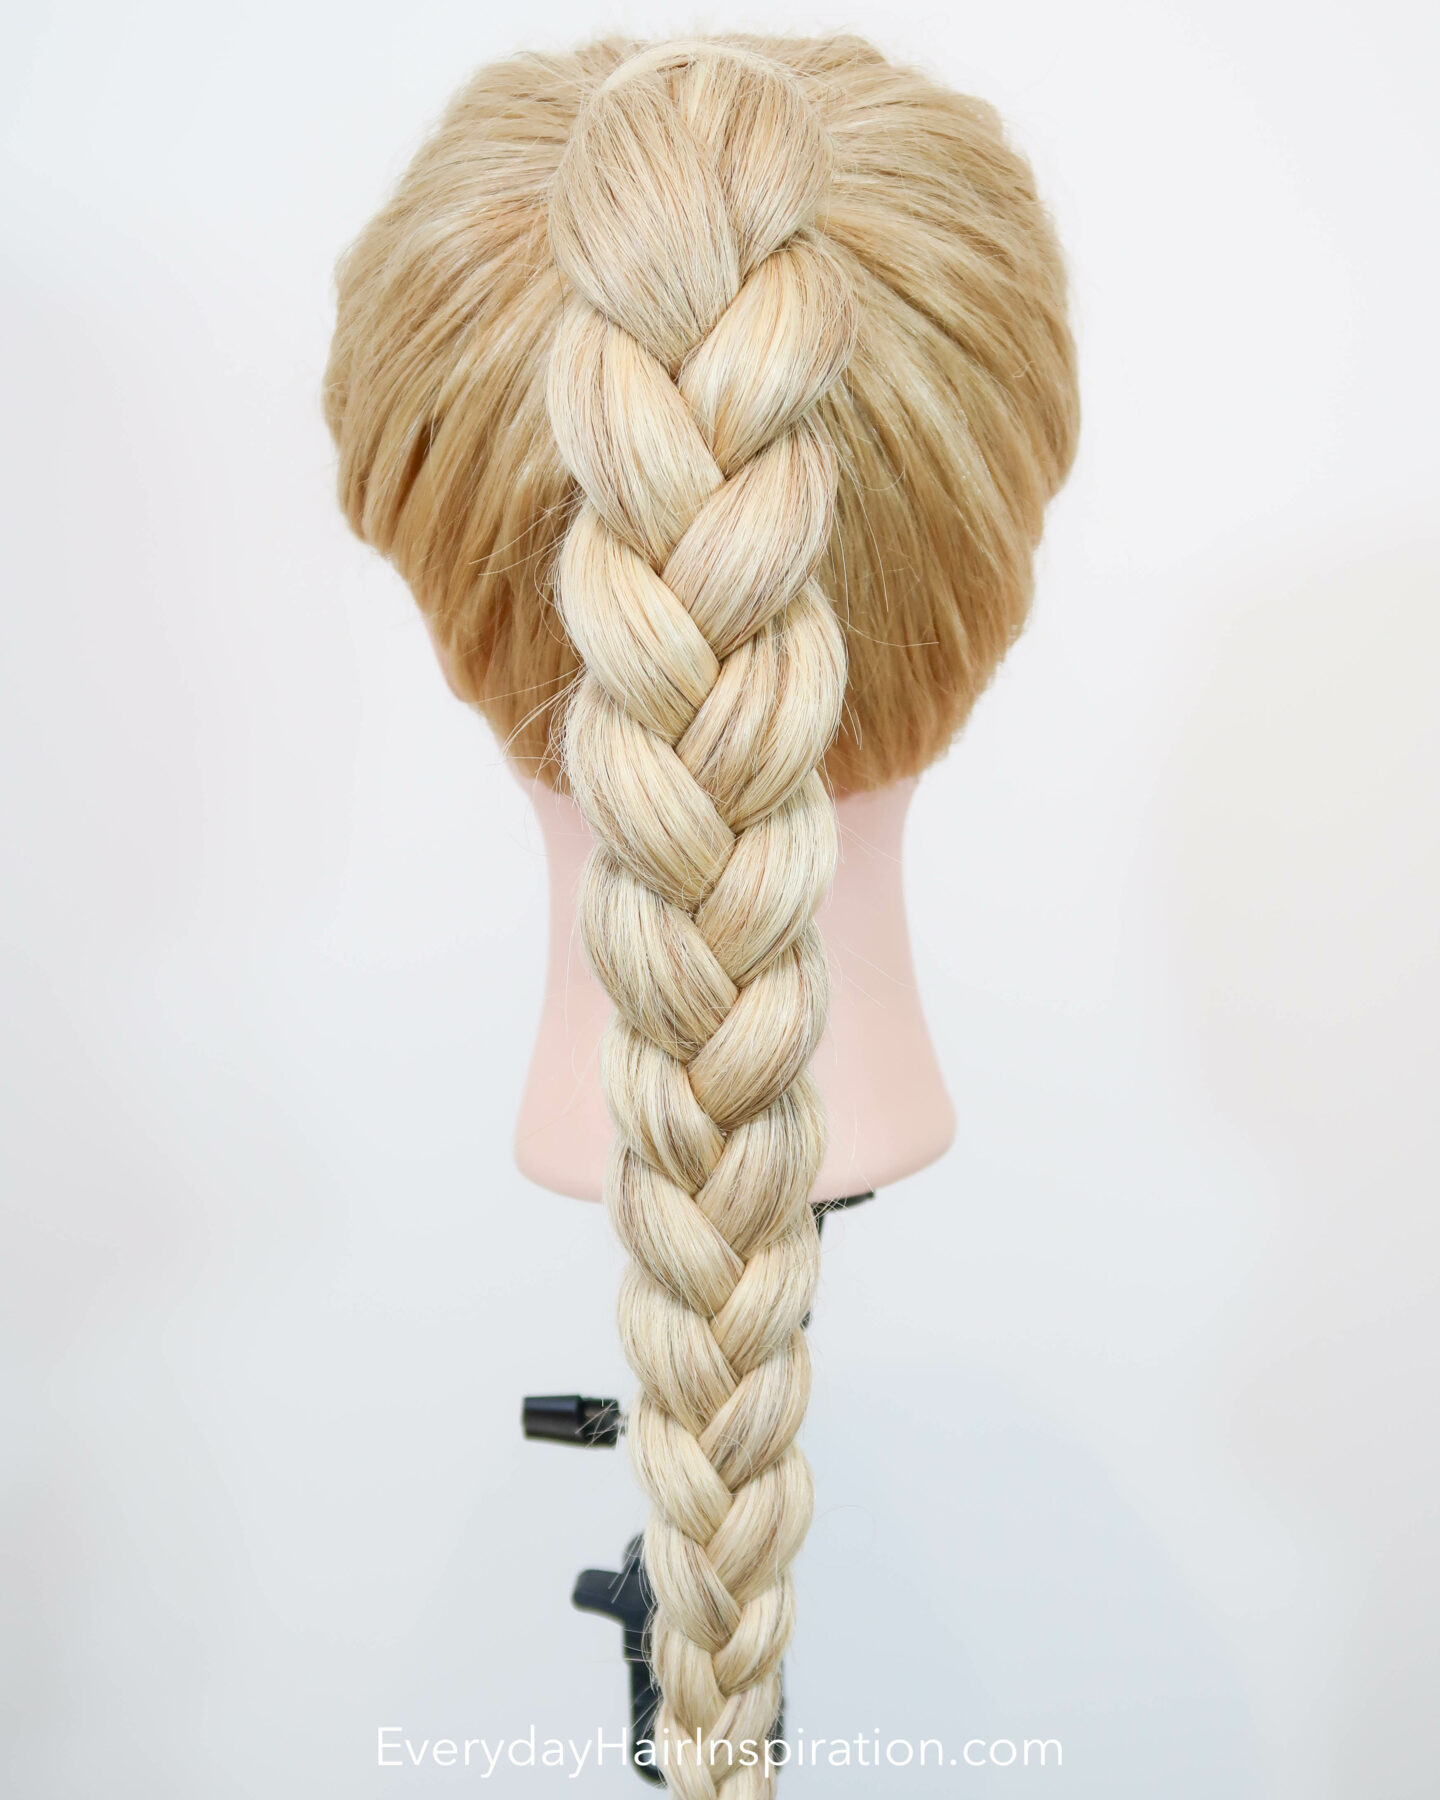 Blonde hairdresser doll seen from the back with a high ponytail with a 3 strand braid, braided in the hair.